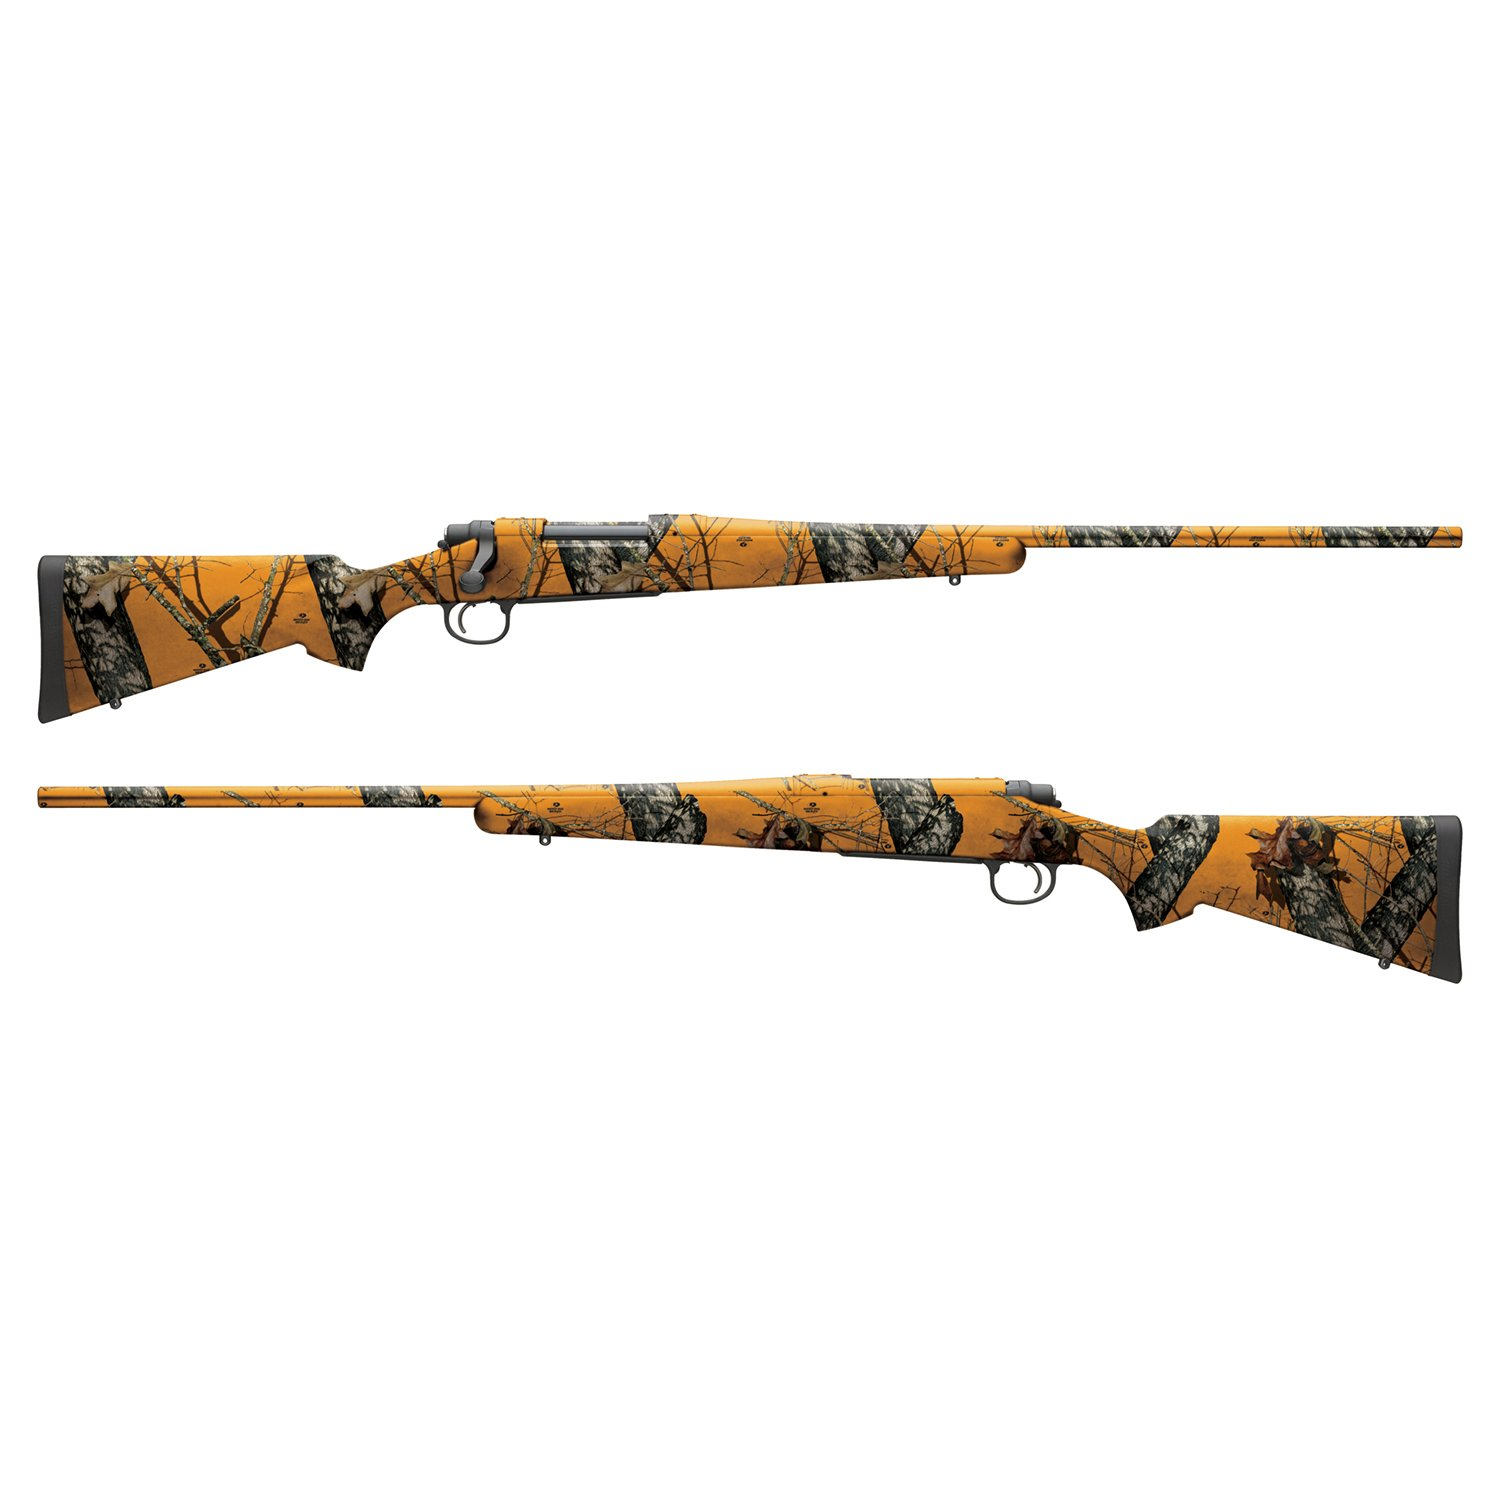 "Mossy Oak Graphics Blaze 14004-R-BZ Rifle Camo Skin for 29"" Barrels"